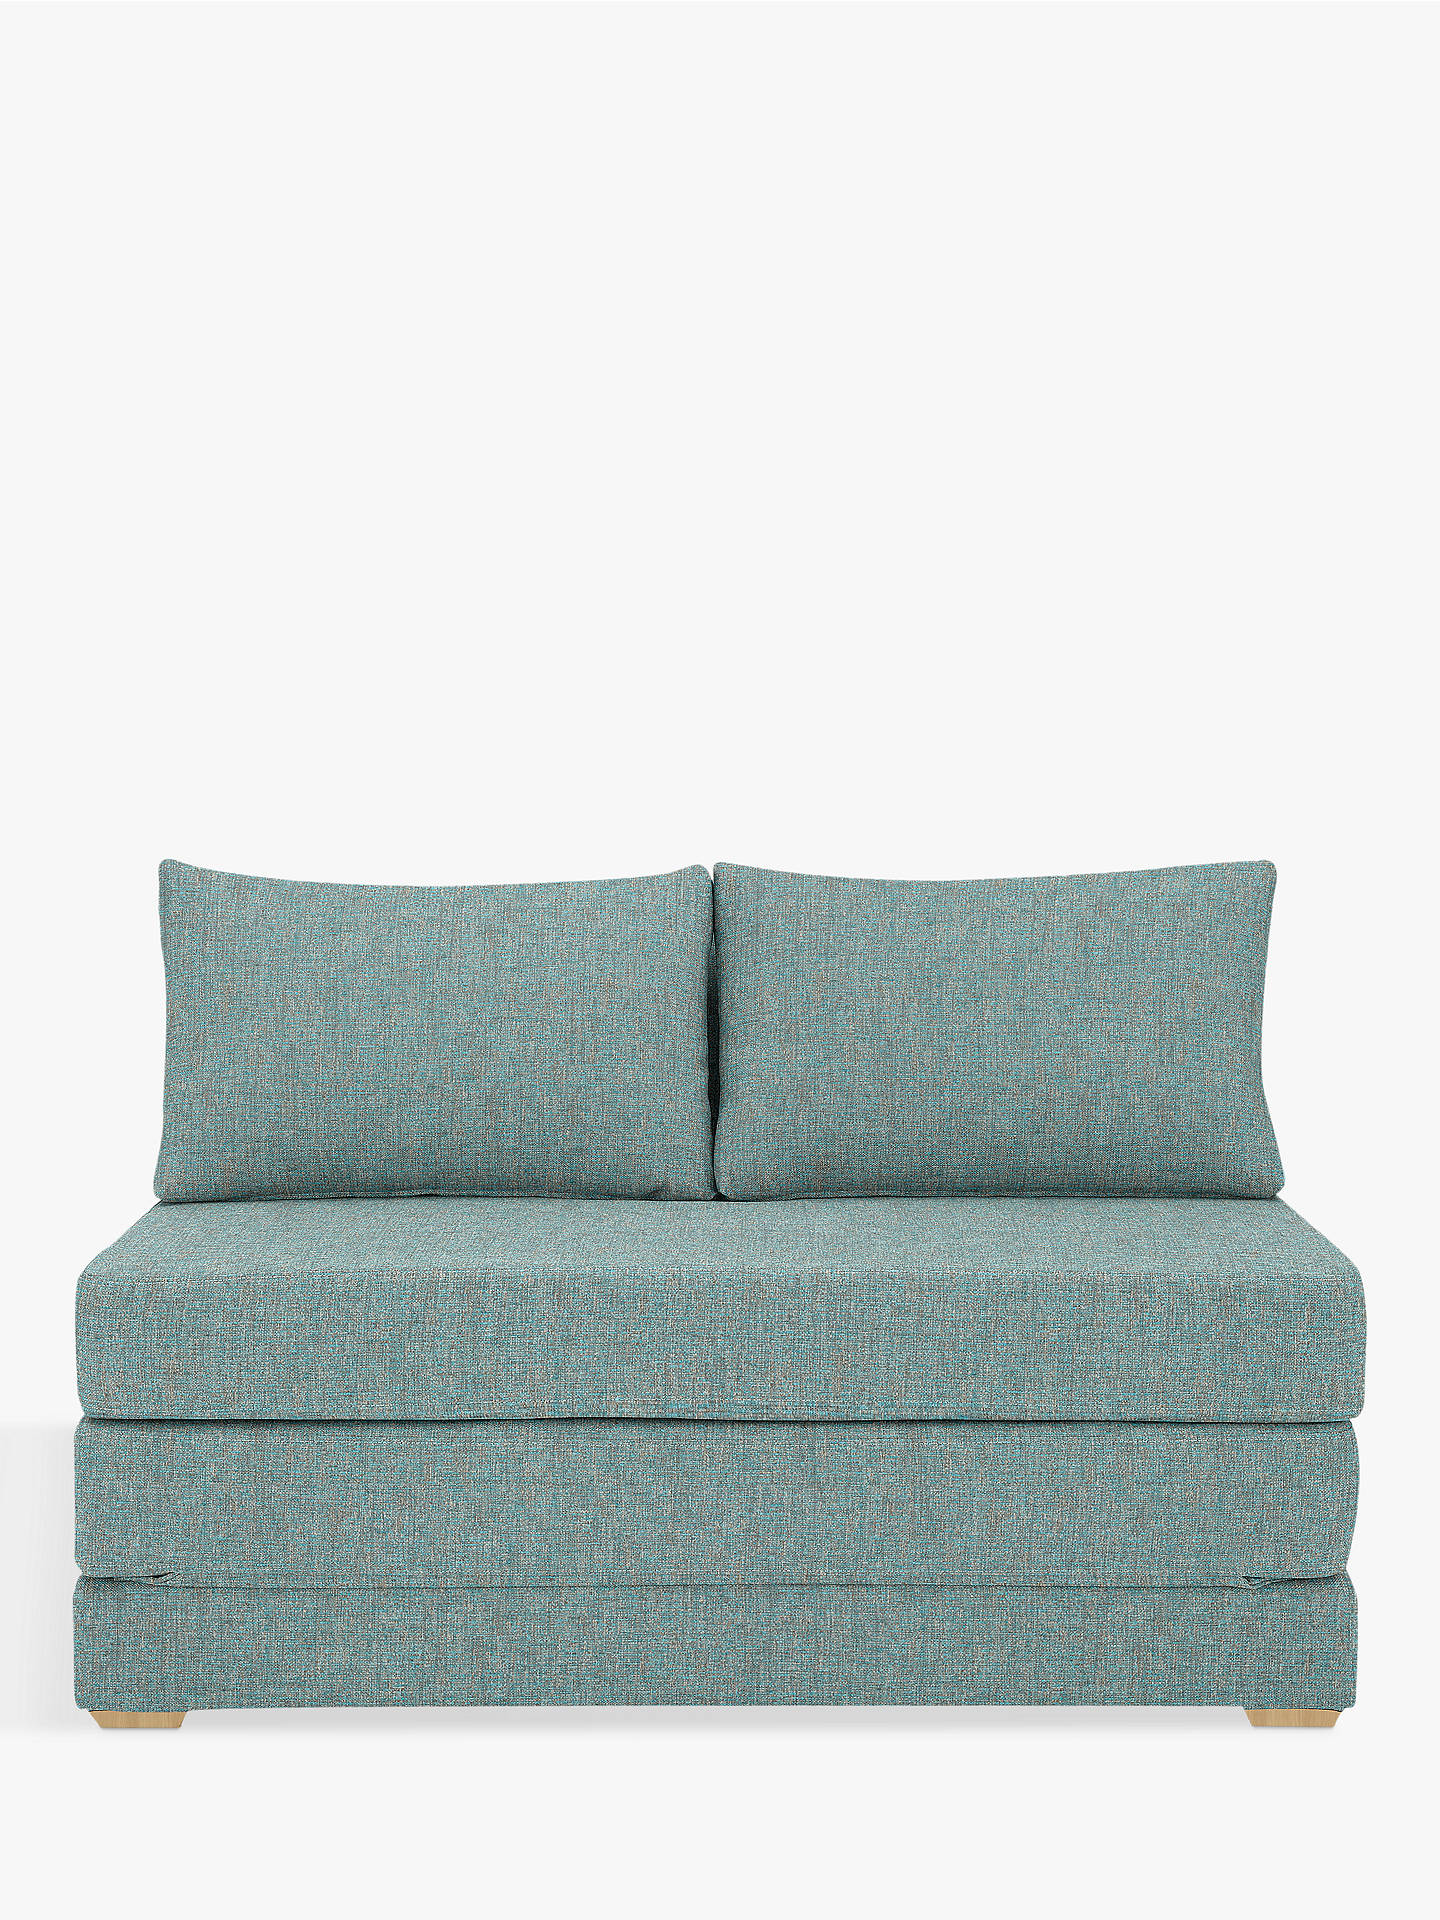 Marvelous House By John Lewis Kip Small Double Sofa Bed Light Leg Riley Teal Ocoug Best Dining Table And Chair Ideas Images Ocougorg